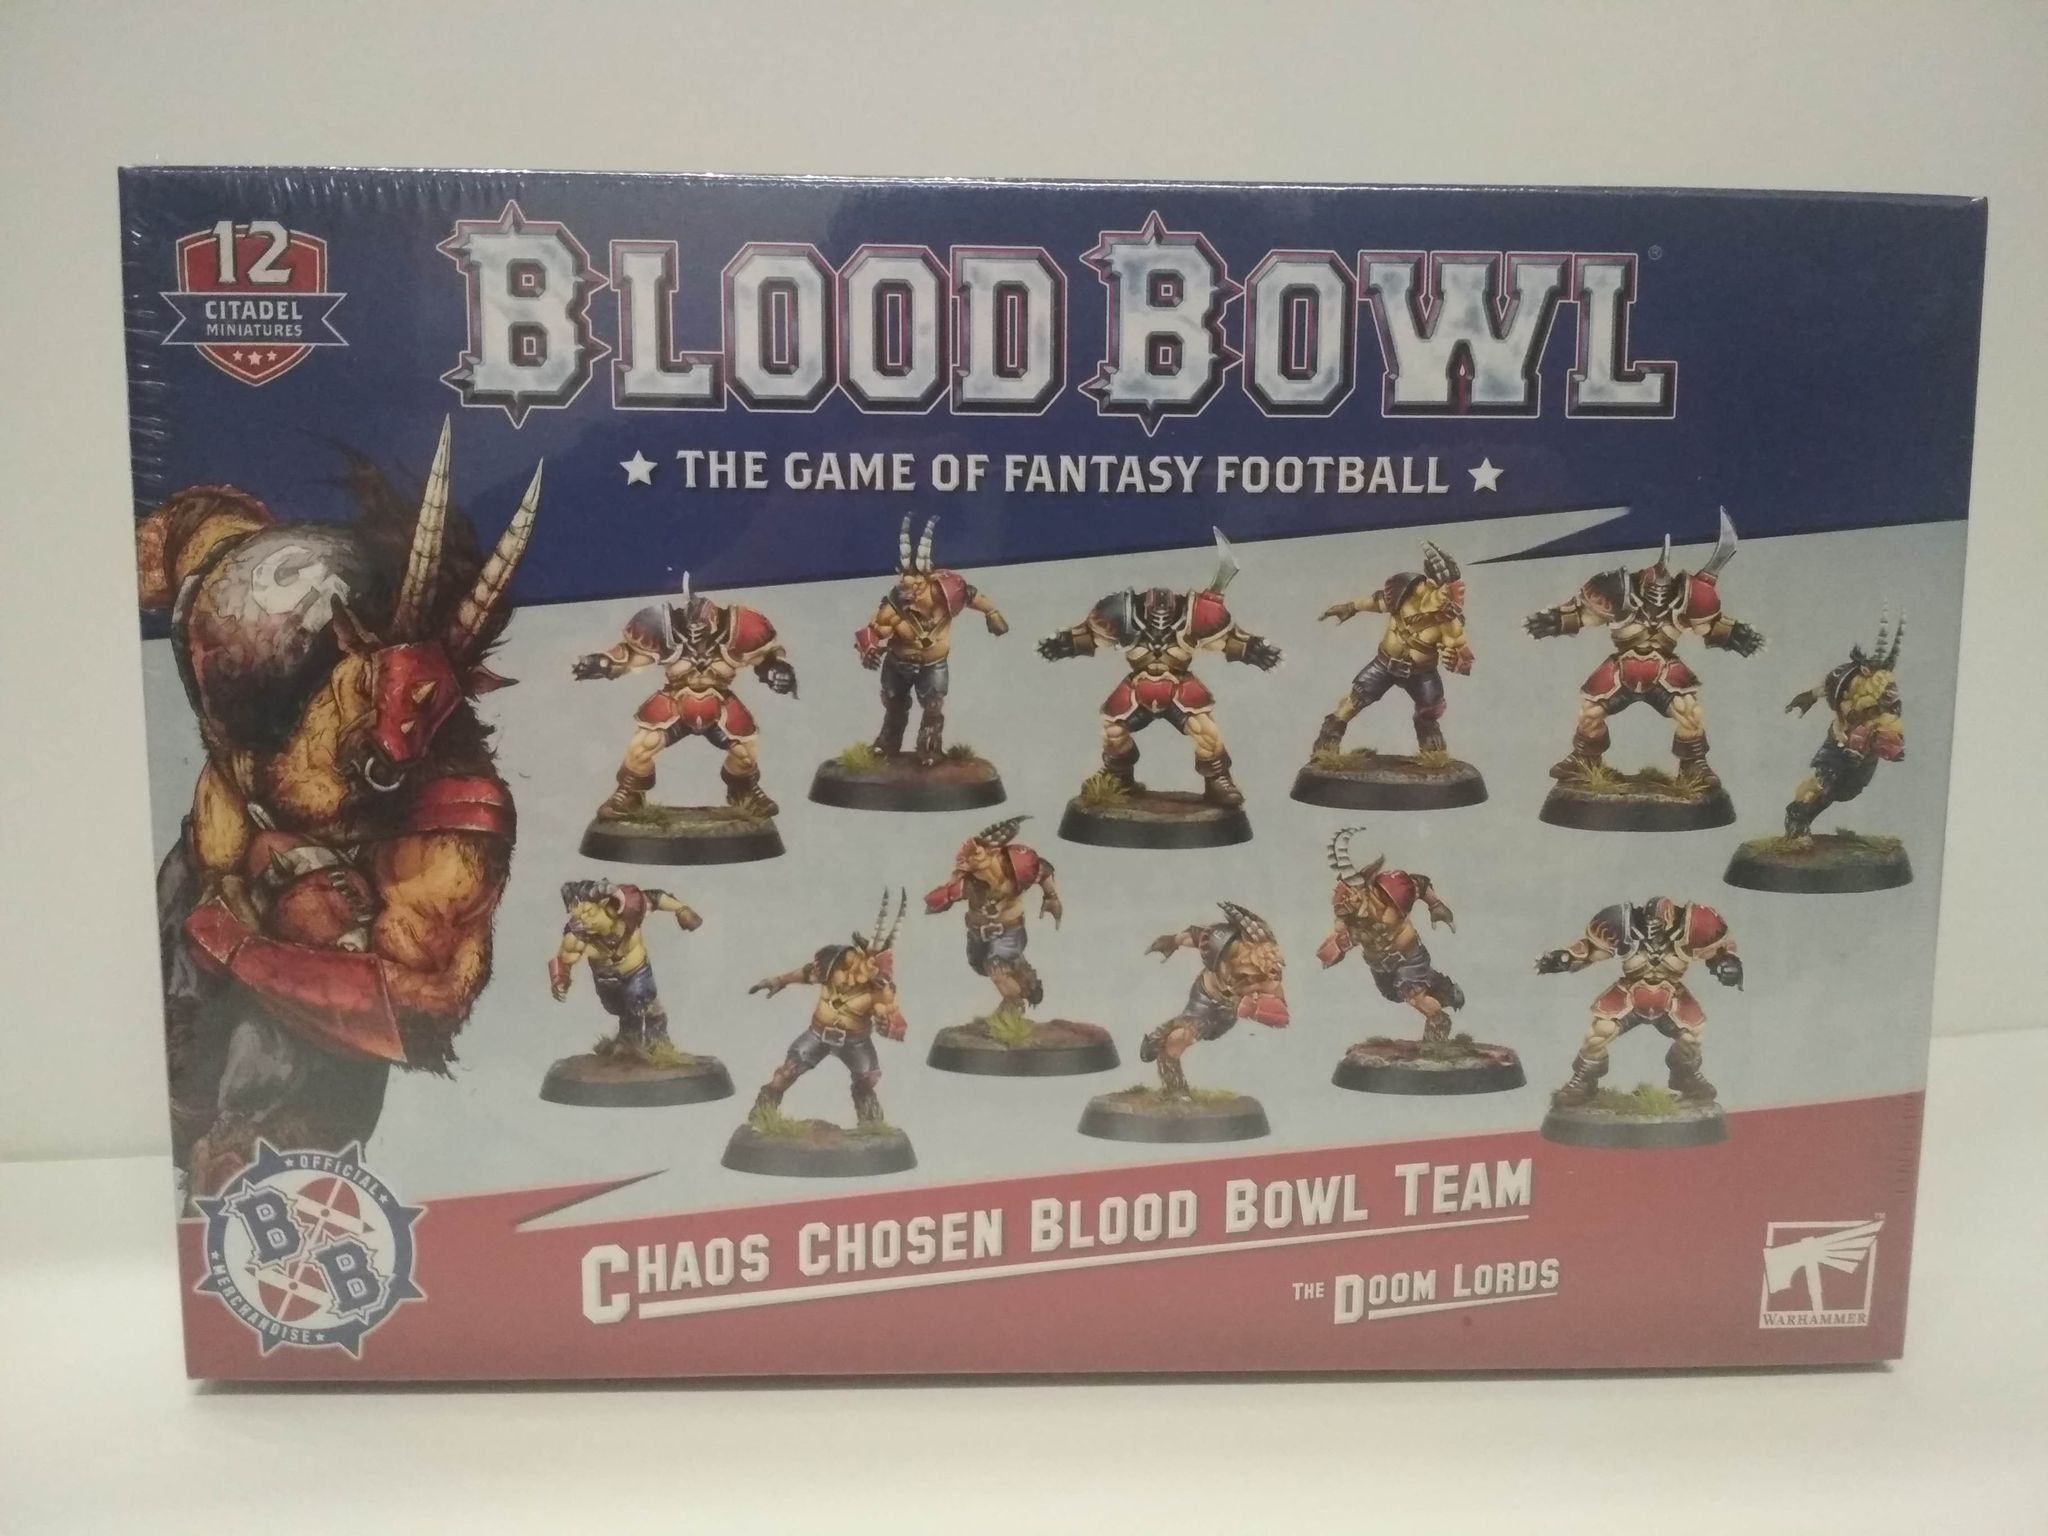 Blood Bowl: The Doom Lords - Chaos Chosen Team (second edition)